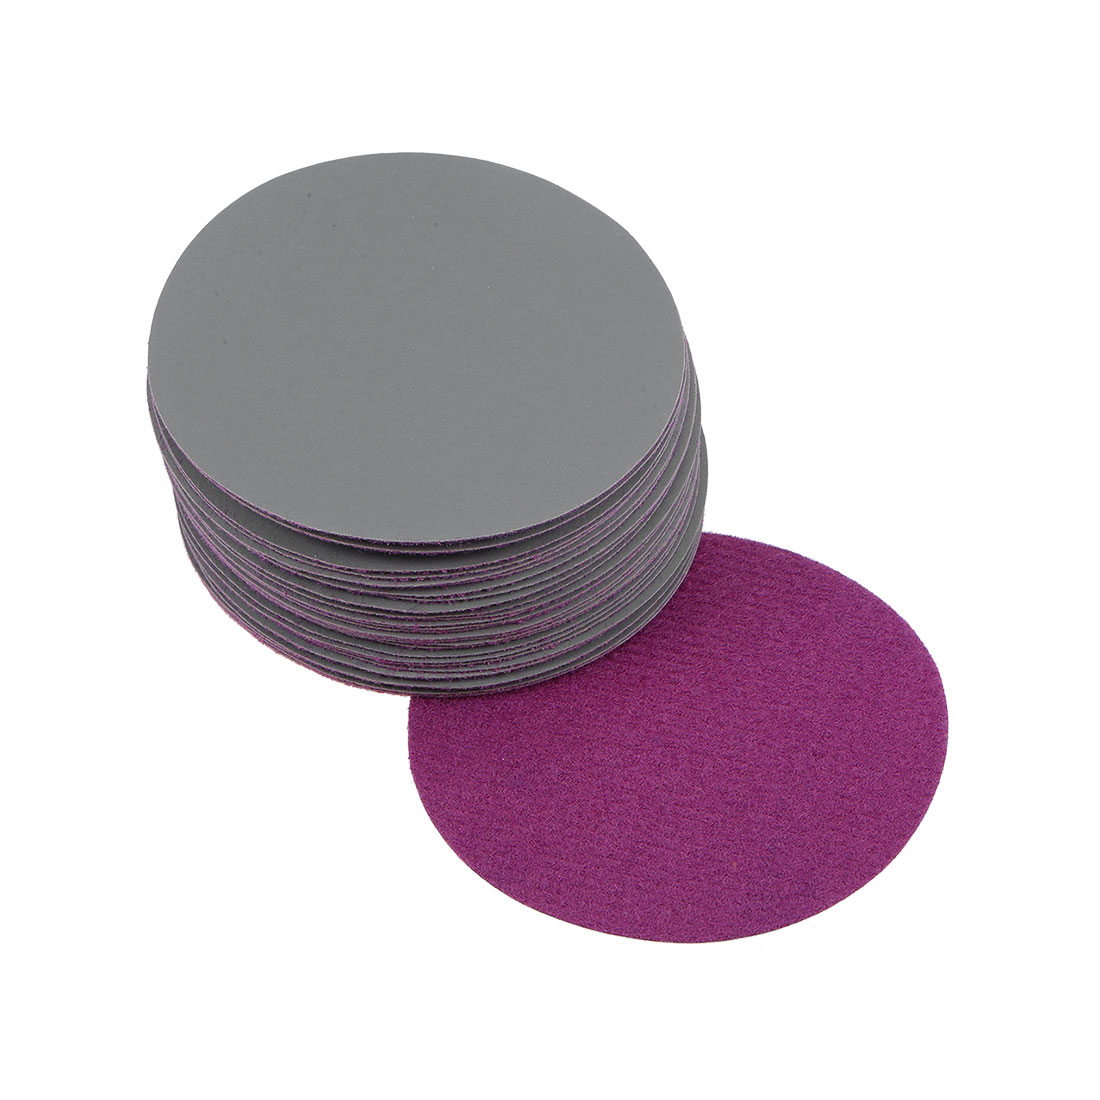 3 inch Wet Dry Discs 2000 Grit Hook and Loop Sanding Disc Silicon Carbide 30pcs